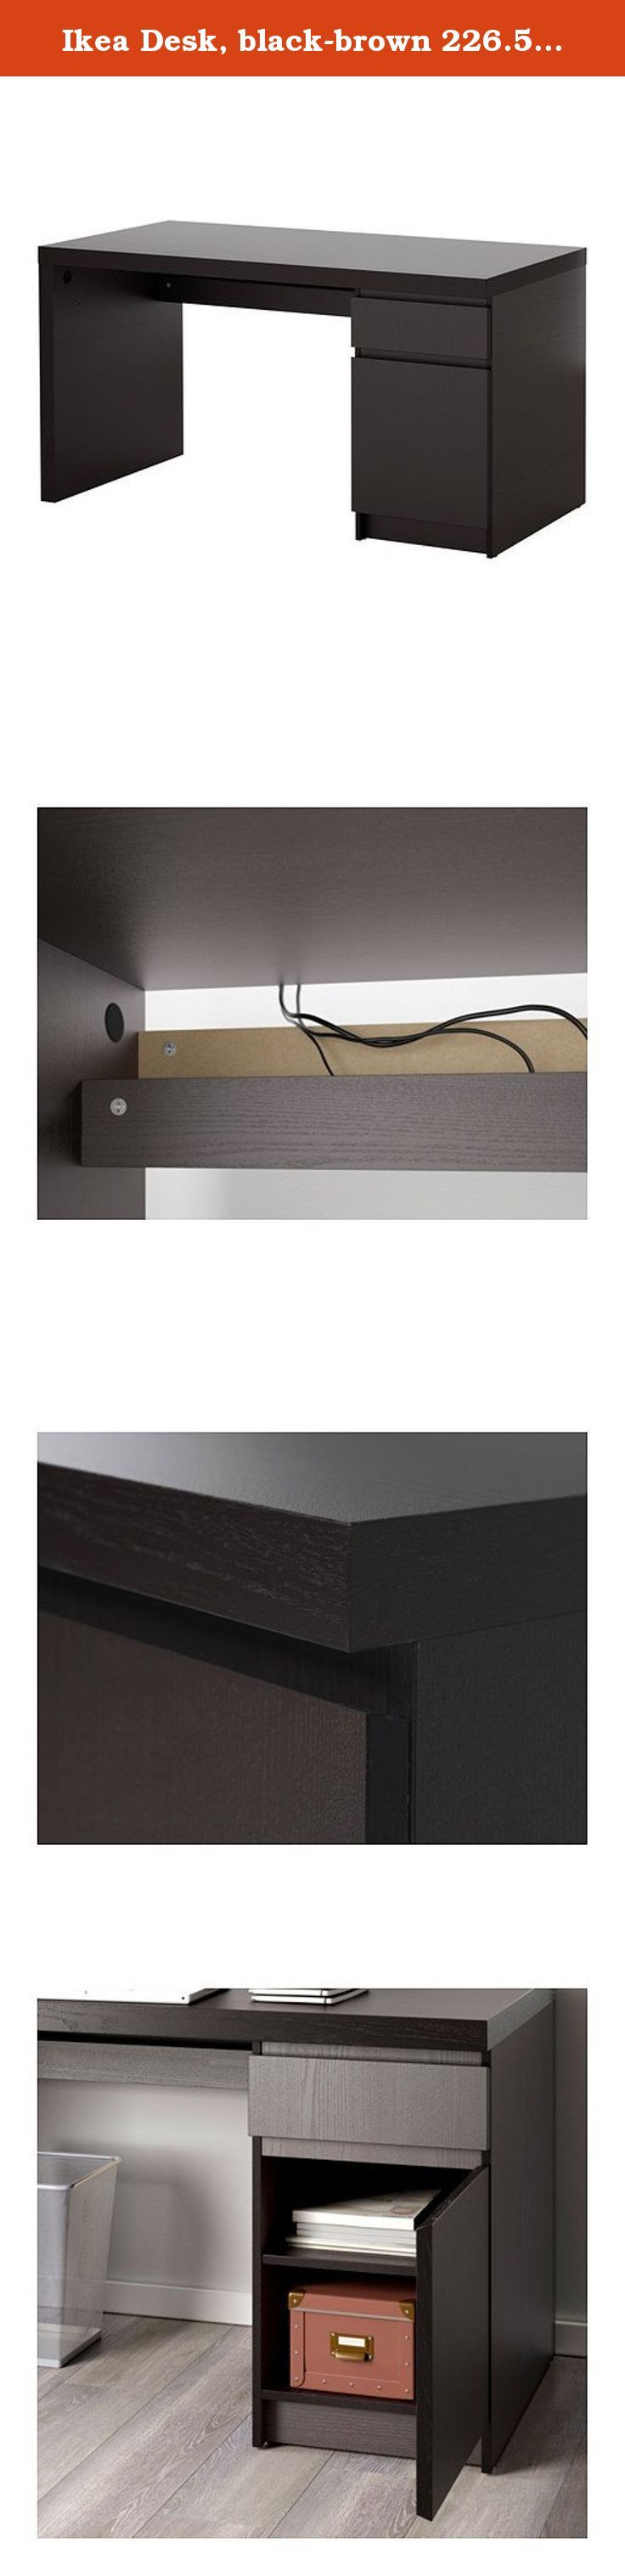 """Ikea Desk, black-brown 226.5145.2230. Particleboard, Fiberboard, Honeycomb structure recycled paper filling, Ash veneer, Stain, Clear acrylic lacquer, Paper Product dimensions Width: 55 1/8 """" Depth: 25 5/8 """" Height: 28 3/4 """" Max. load: 55 lb Width: 140 cm Depth: 65 cm Height: 73 cm Max. load: 25 kg Good to know Combines with other furniture in the Ikea series. Always follow the instructions in the manual for charging electronic equipment. We recommend that the power is switched off when..."""